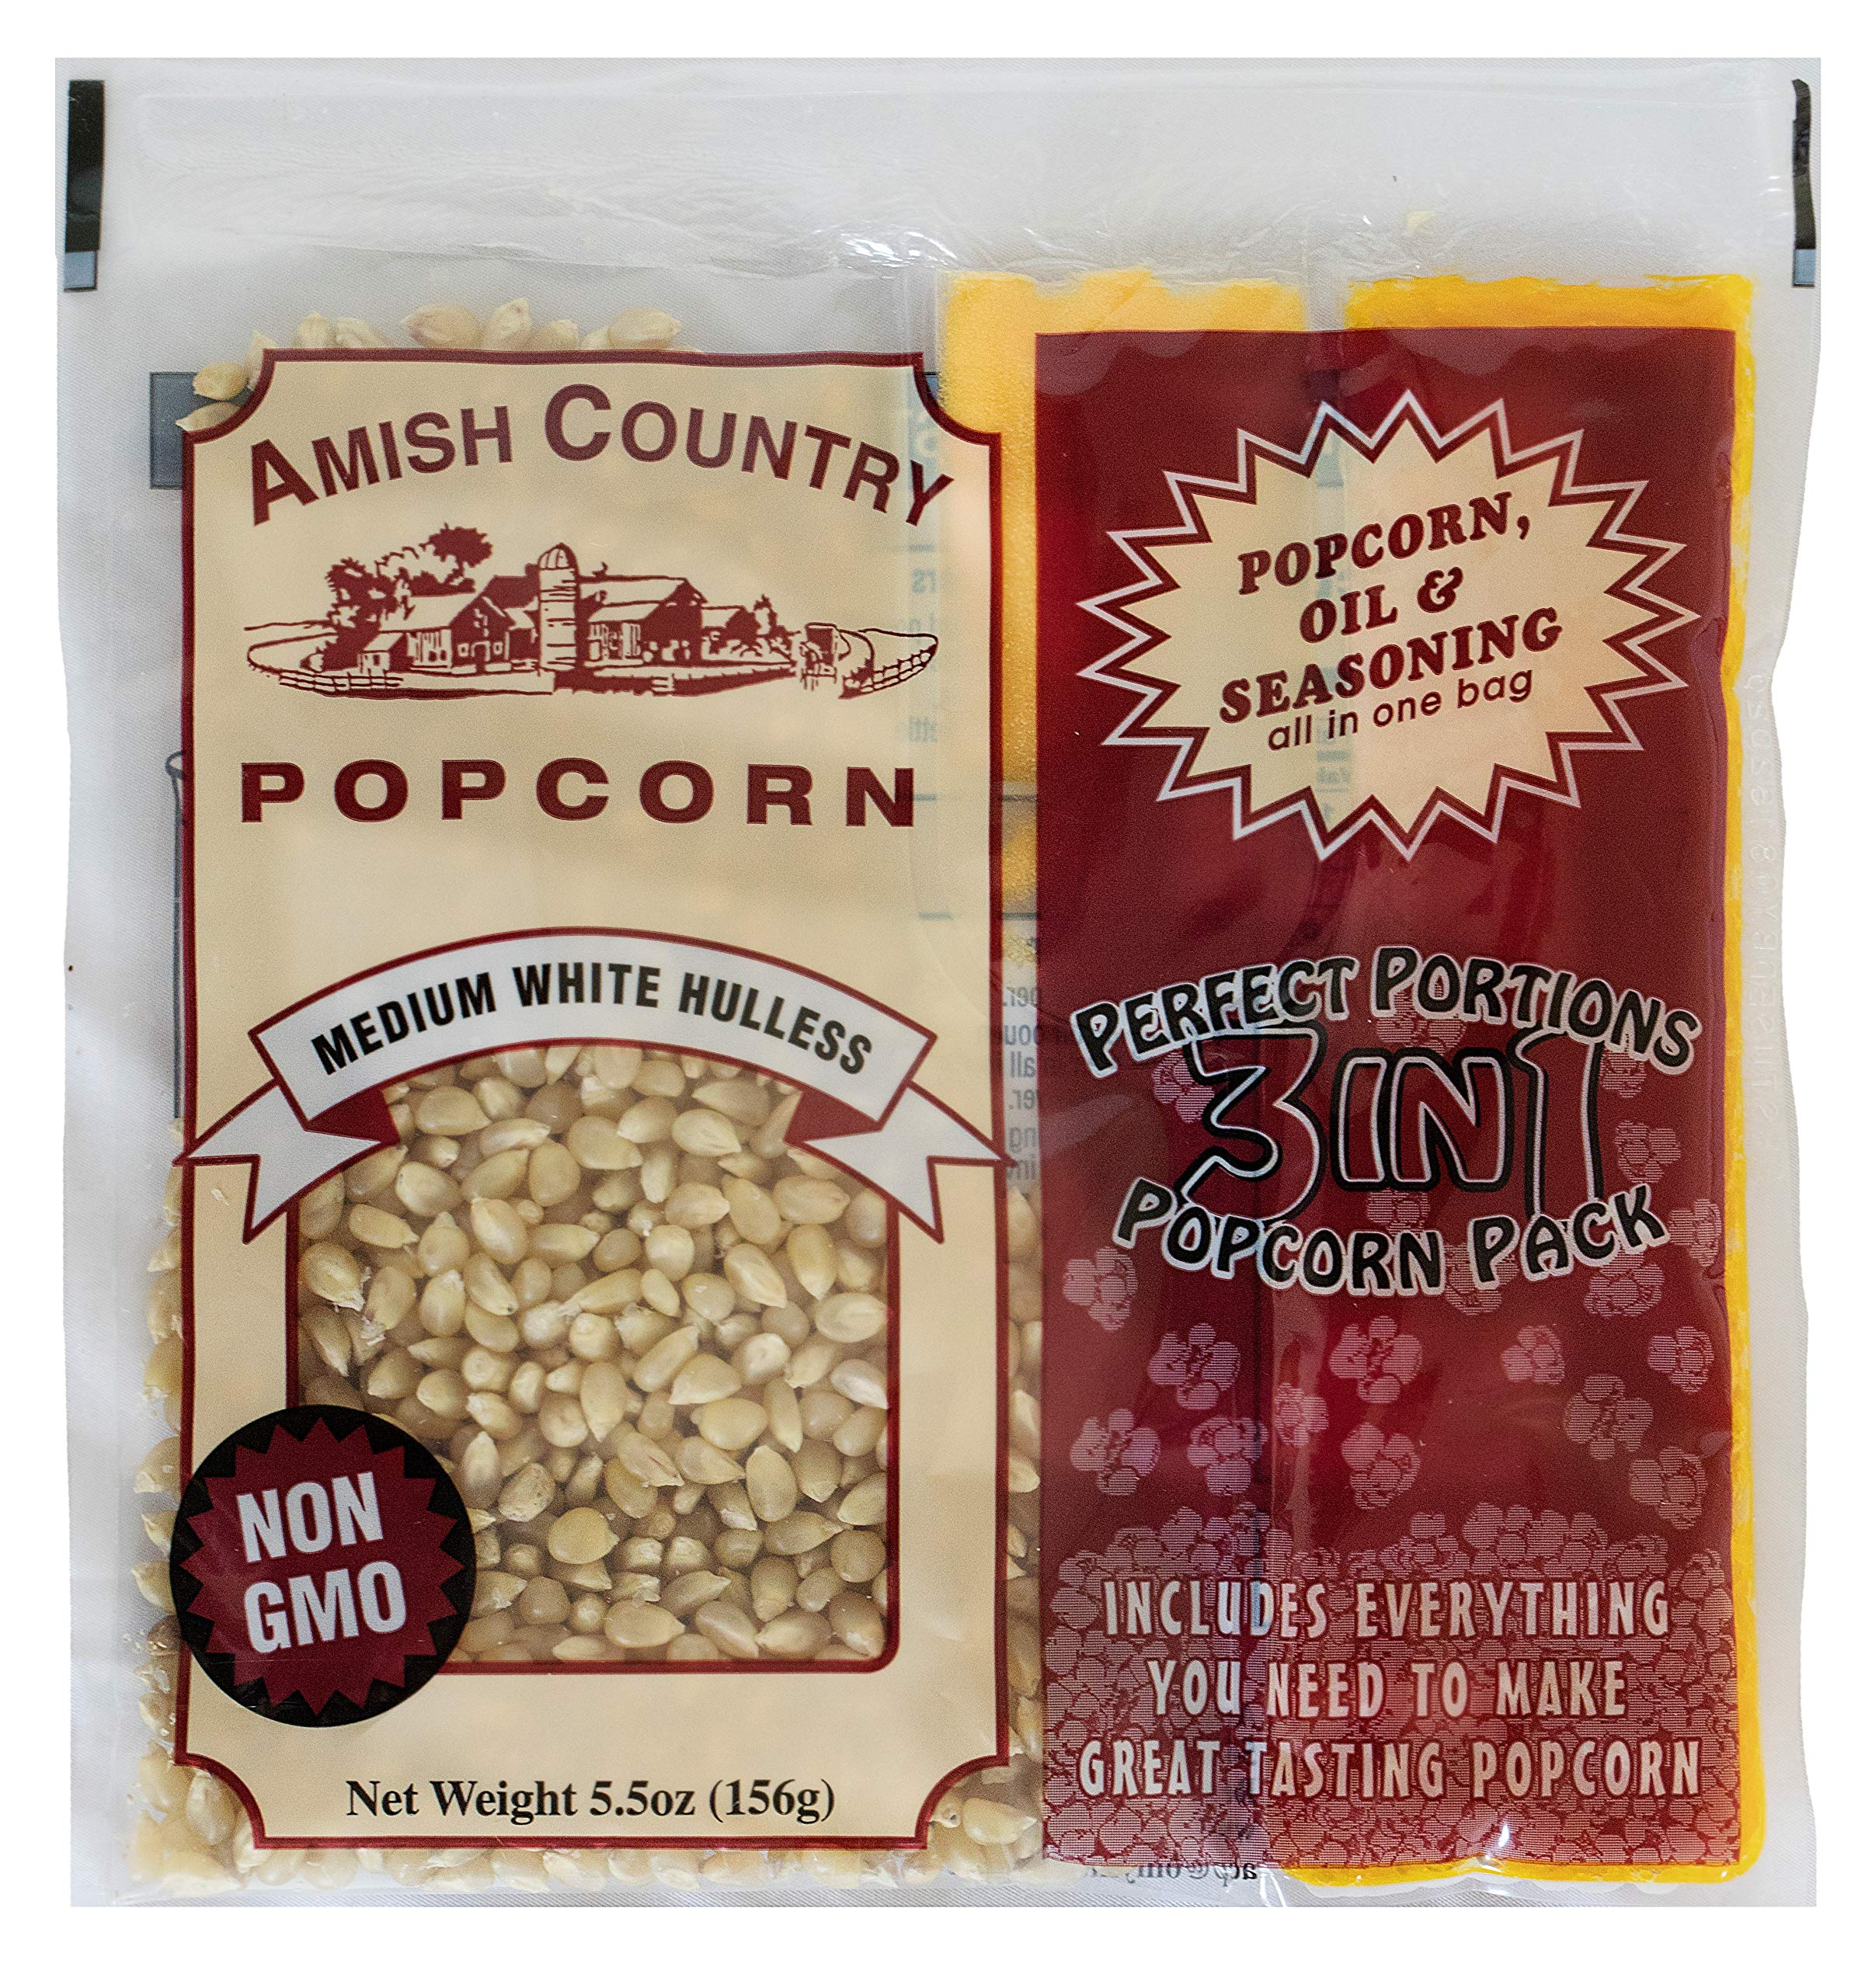 Amish Country Popcorn - (24) 4 Ounce Theater Popcorn Portion Packs of Medium White Popcorn with Oil & Salt - 24 Per Case (Tri-pack) - Old Fashioned with Recipe Guide by Amish Country Popcorn